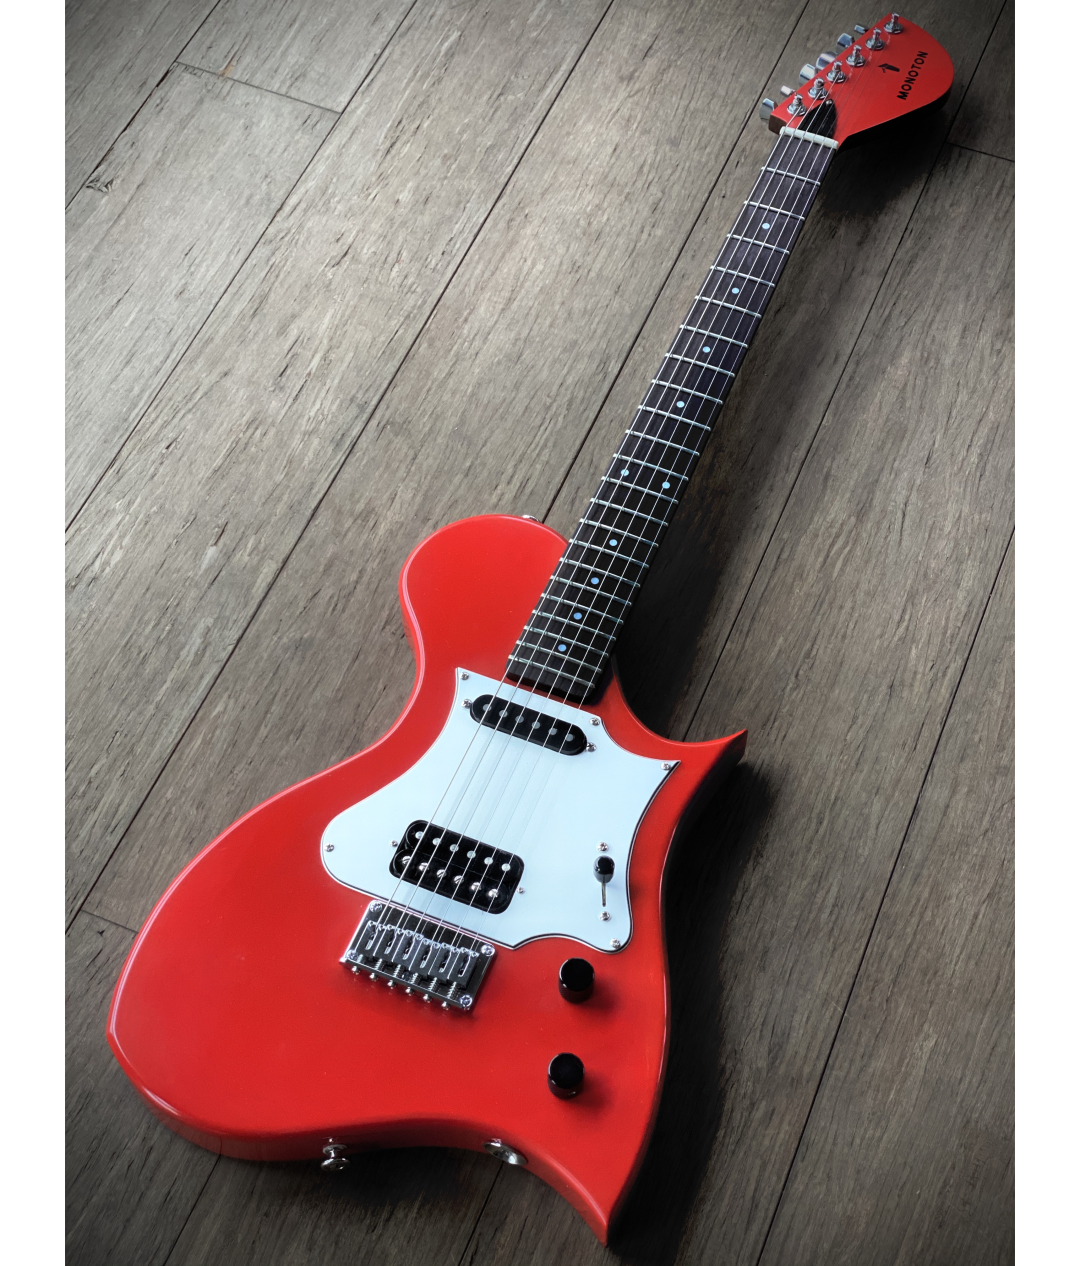 Monoton RedSkirt Electric Guitar full lenght